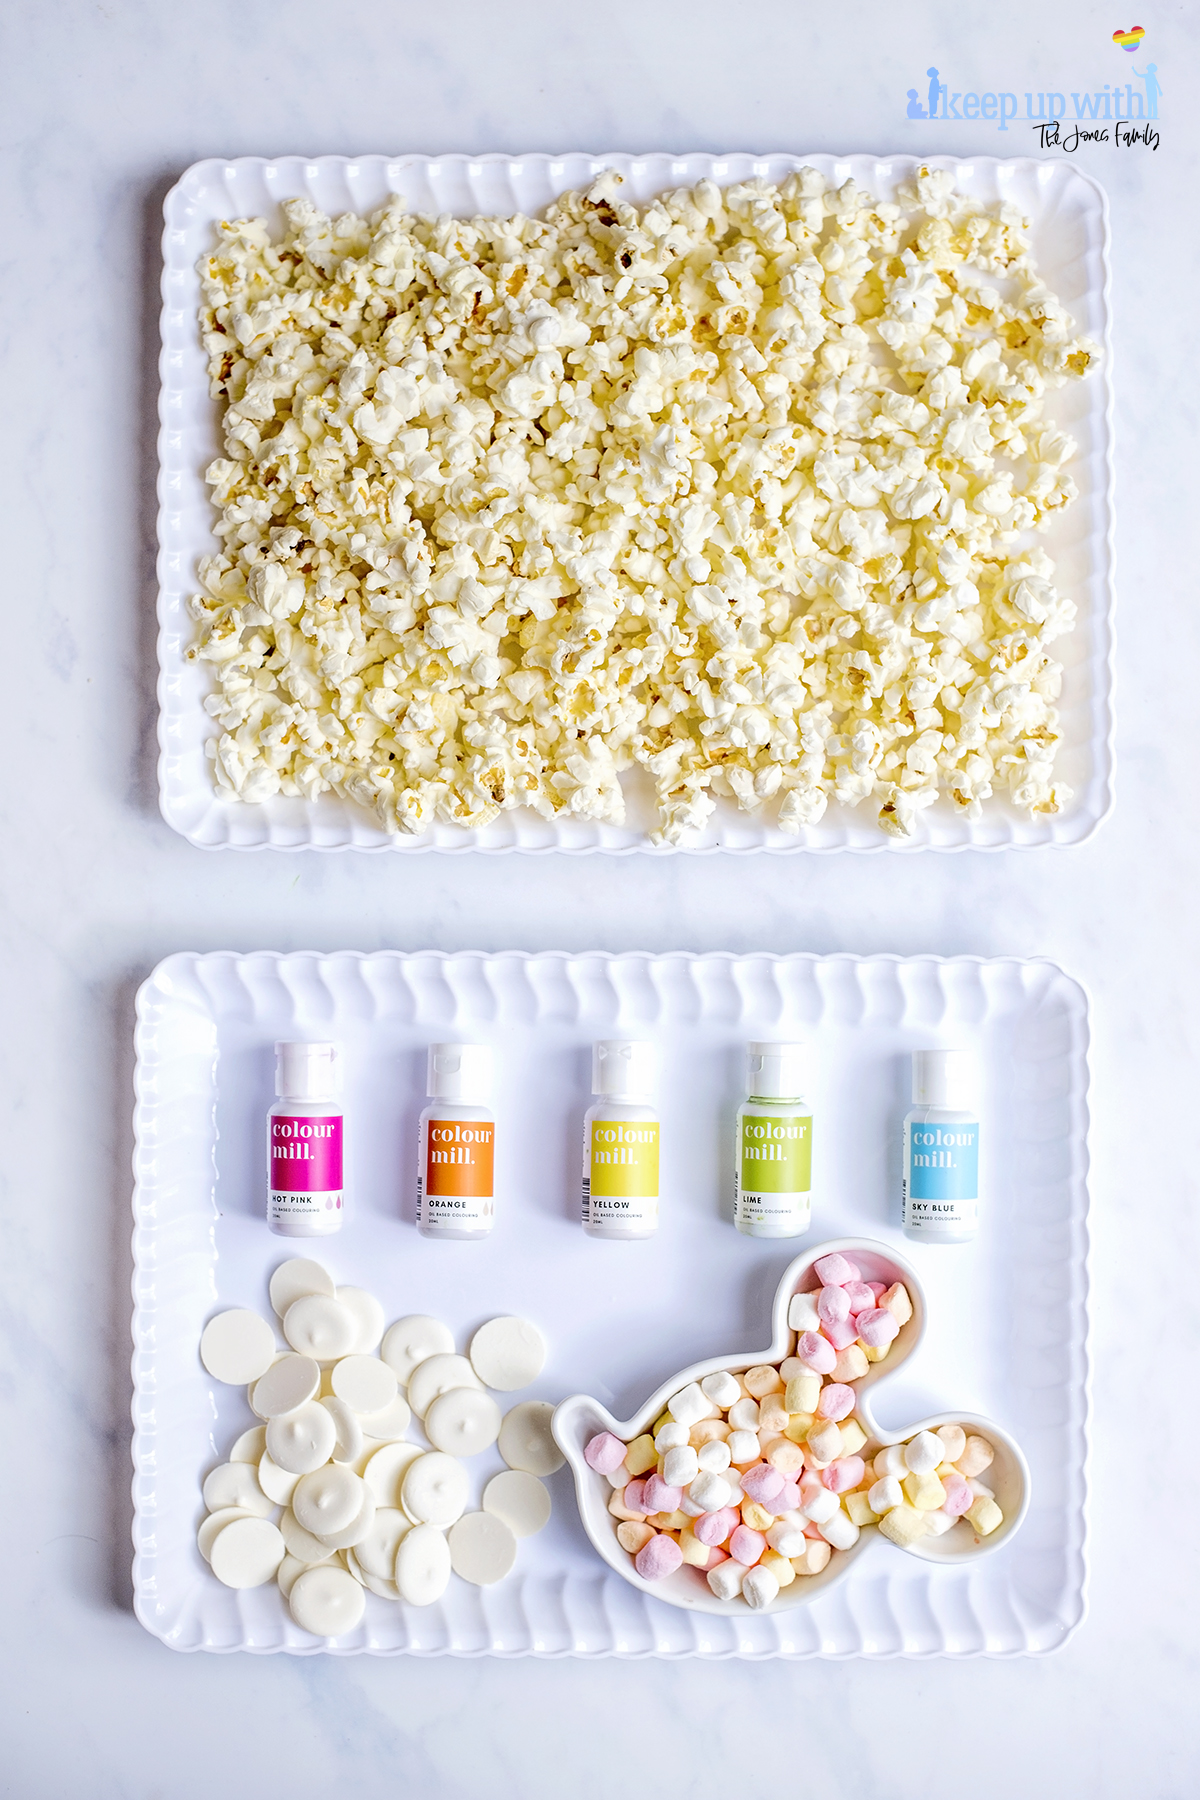 Image shows the ingredients used to make Mermaid Popcorn. Popcorn, spread evenly into a white scalloped tray, a pile of bright white candy melts, a mickey mouse shaped bowl of mini marshmallows and oil based food colourings from Colour Mill. Image by Sara-Jayne from keep Up With the Jones family.